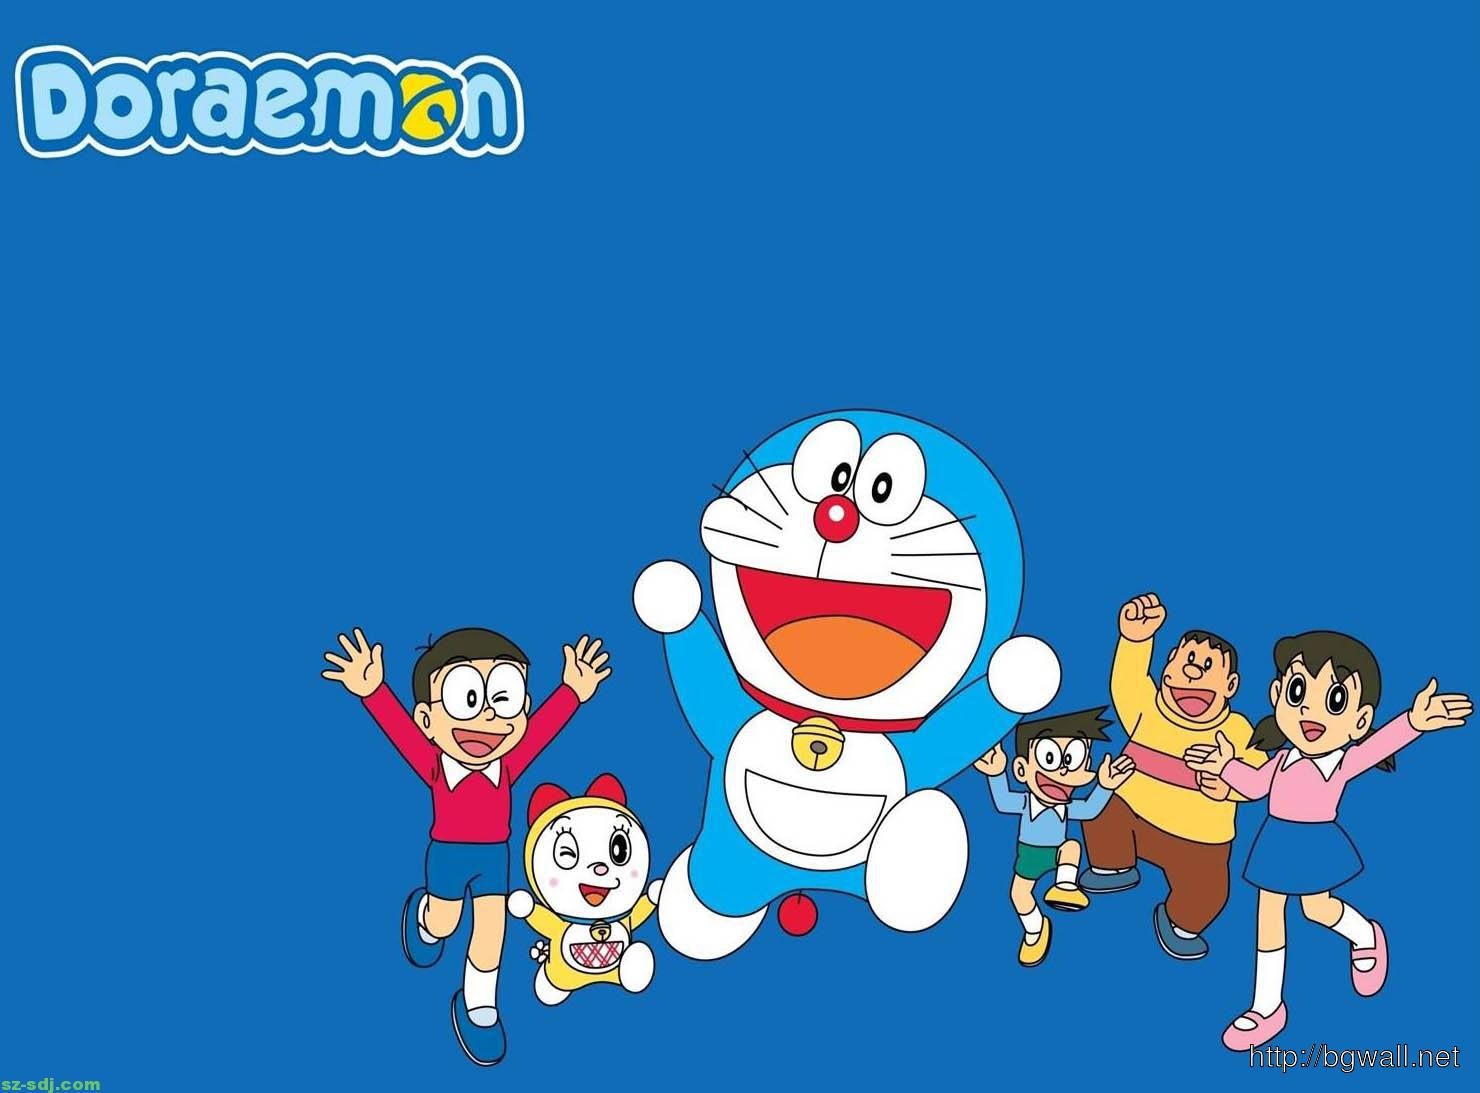 doraemon-family-and-friends-wallpaper-hd